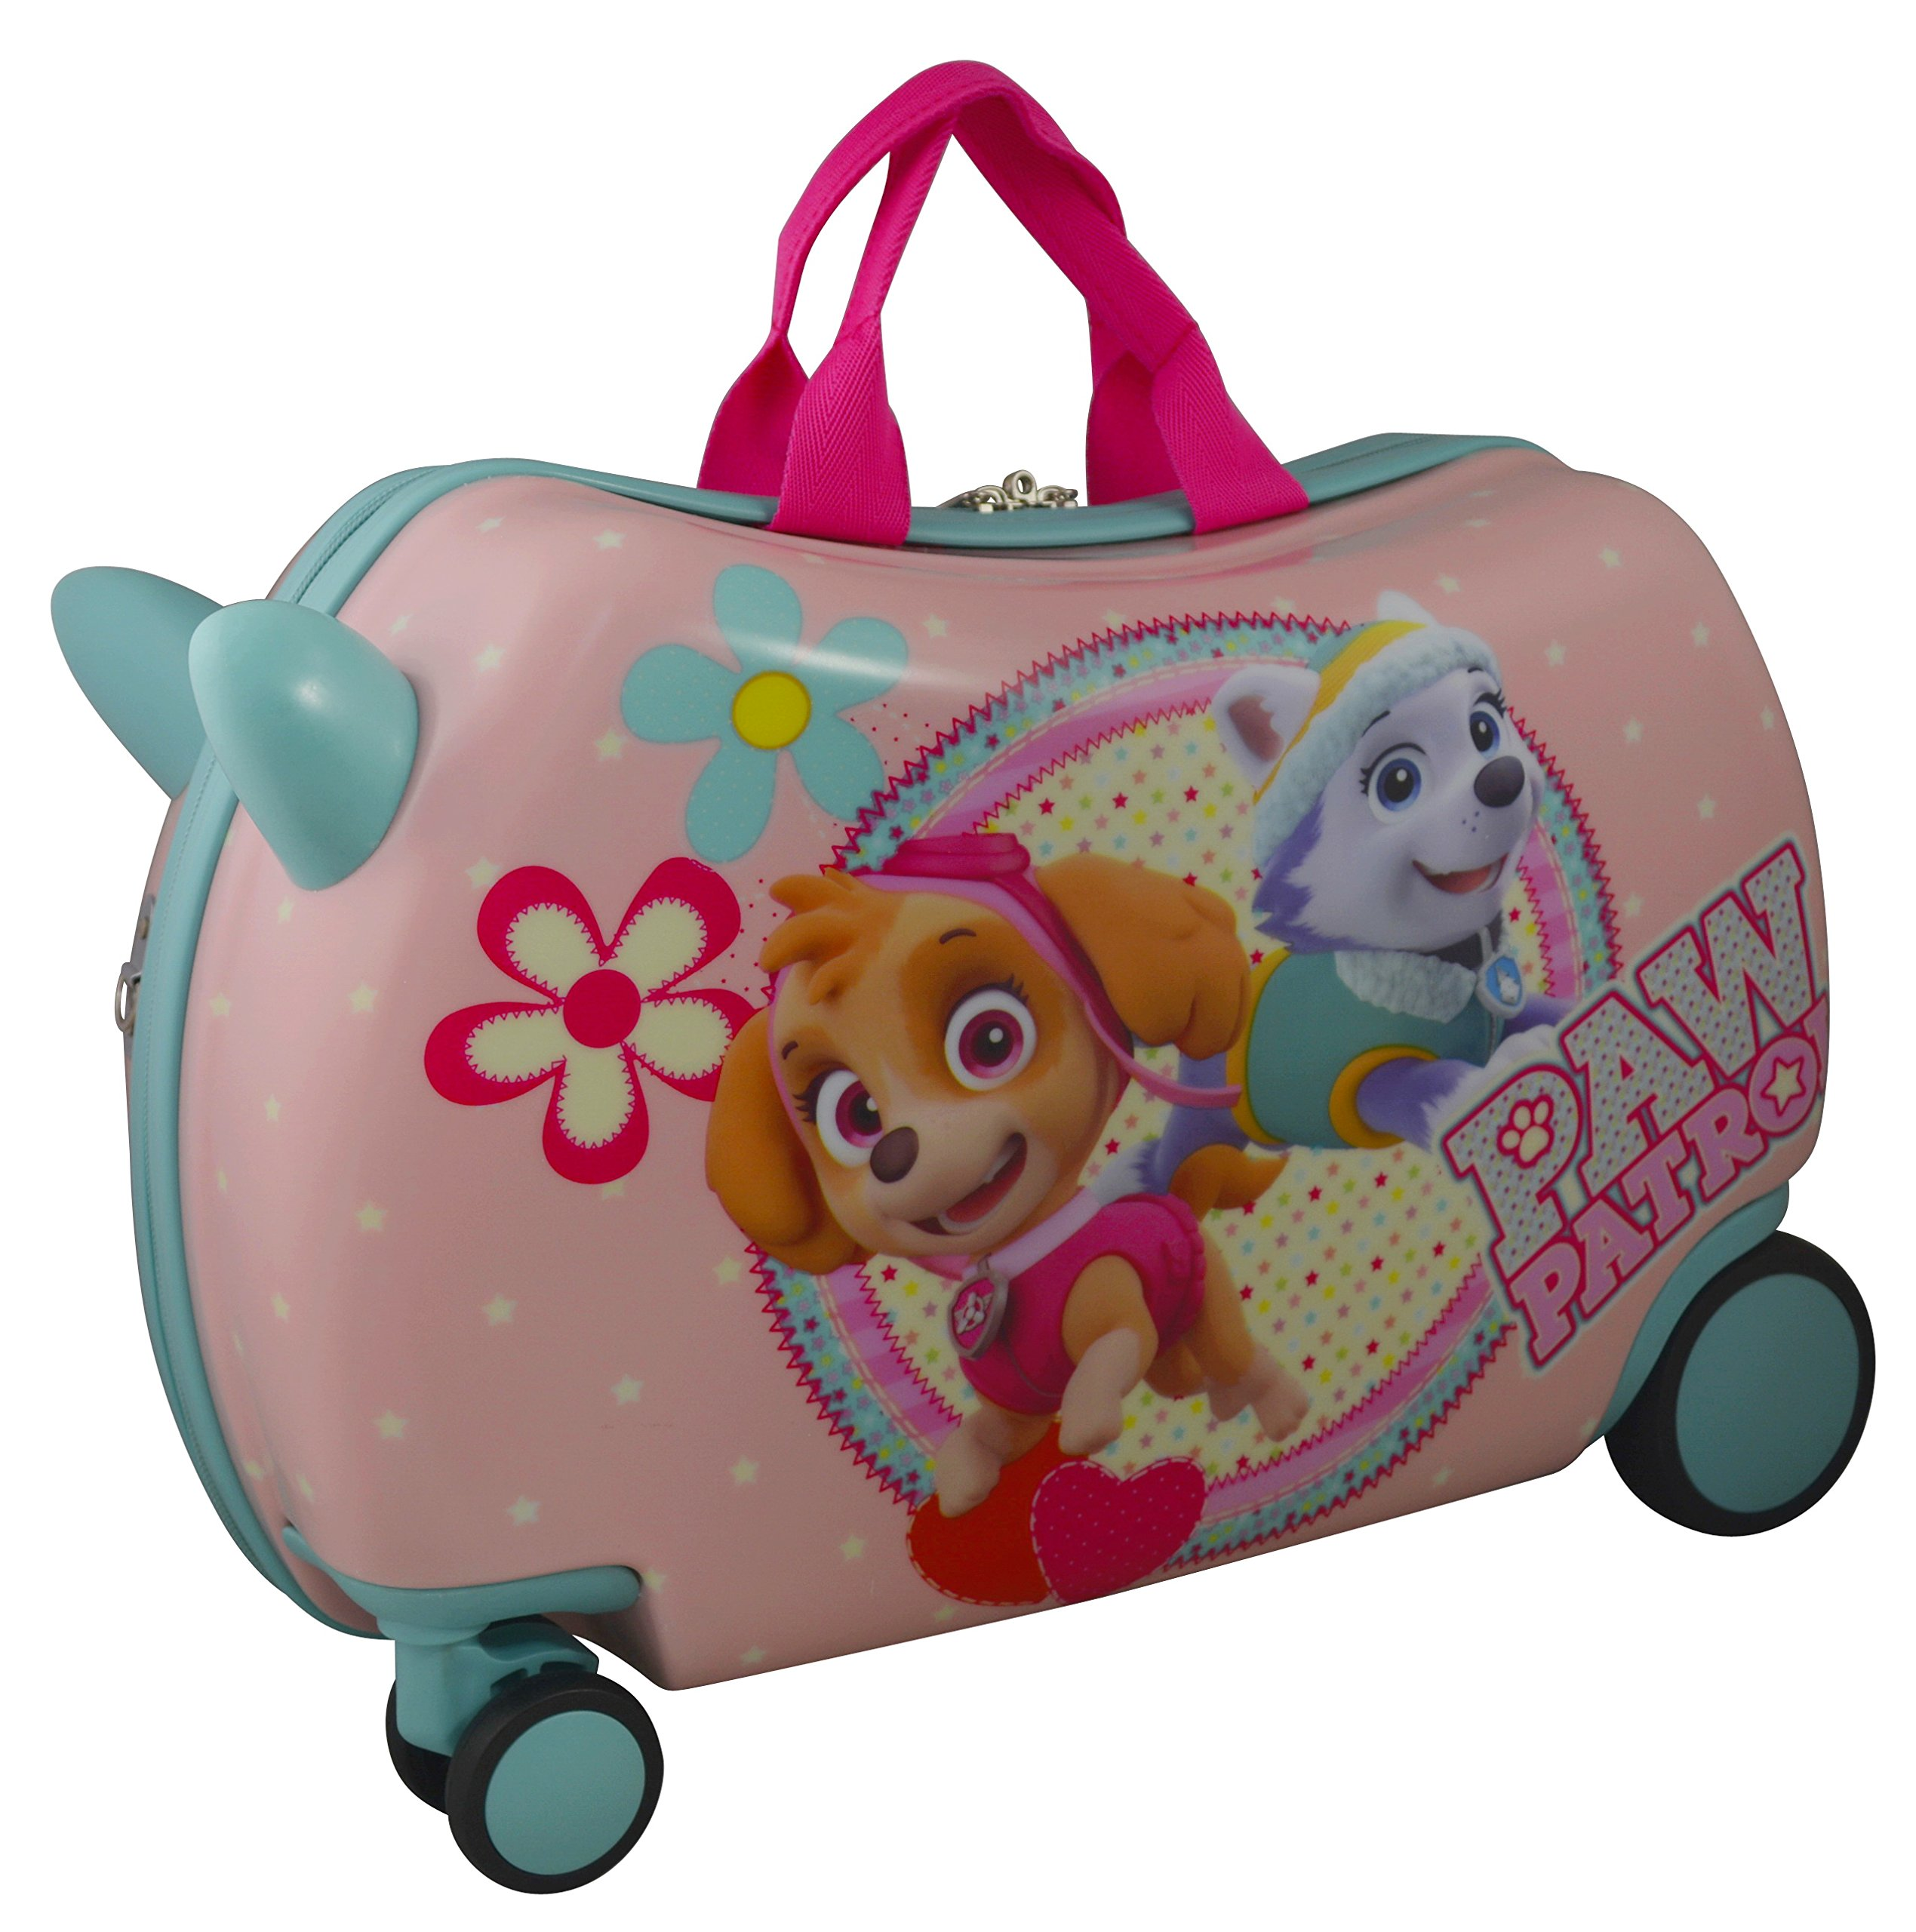 Nickelodeon Paw Patrol Carry On Luggage 20'' Kids Ride-On Suitcase Optional Bonus Activity Pack (Pink - Alone)